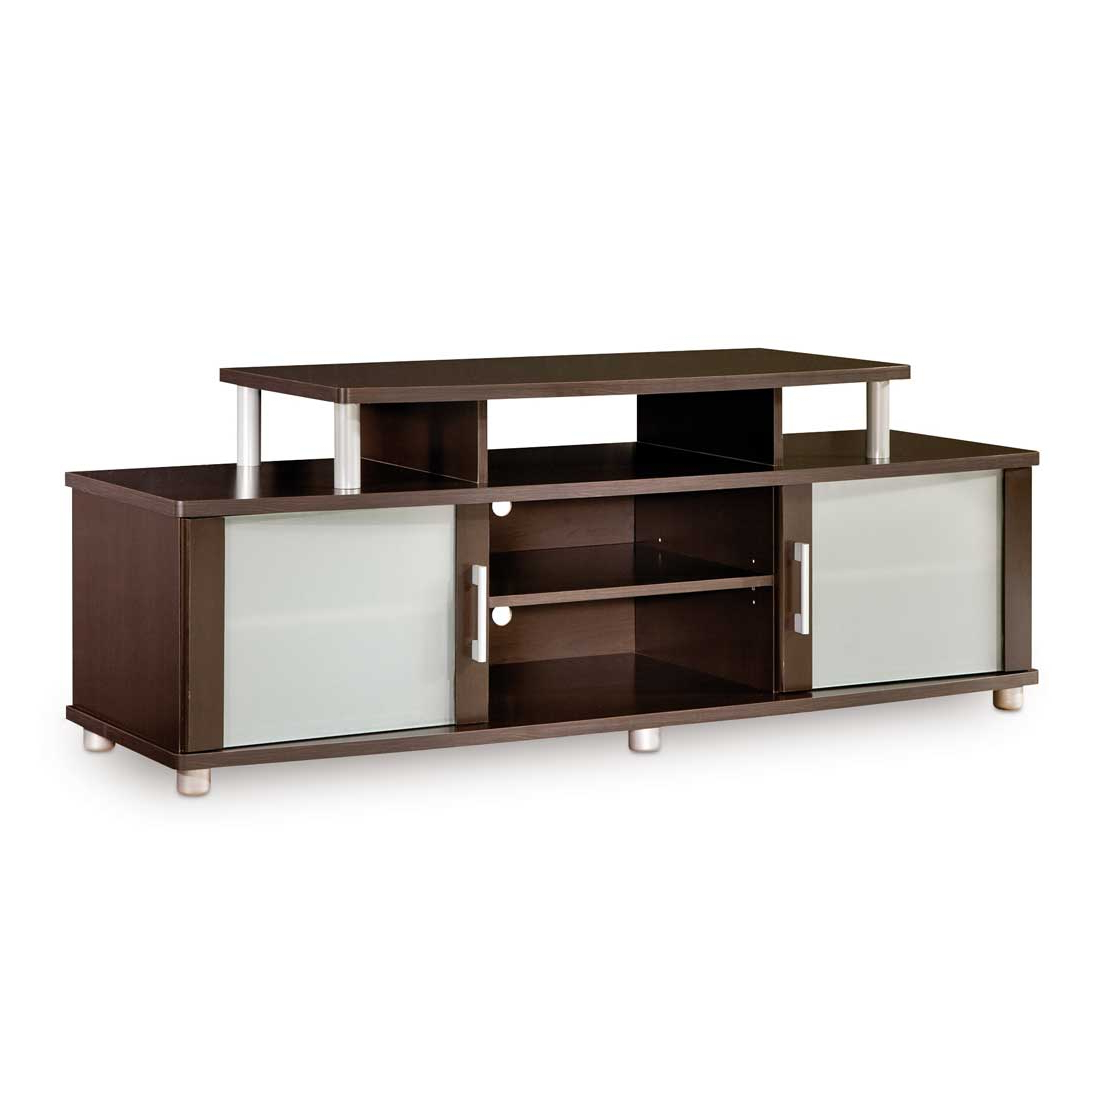 Latest Furniture: Wooden Modern Tv Stand Also Under Door Draft Stopper And For Modern Wooden Tv Stands (View 7 of 20)